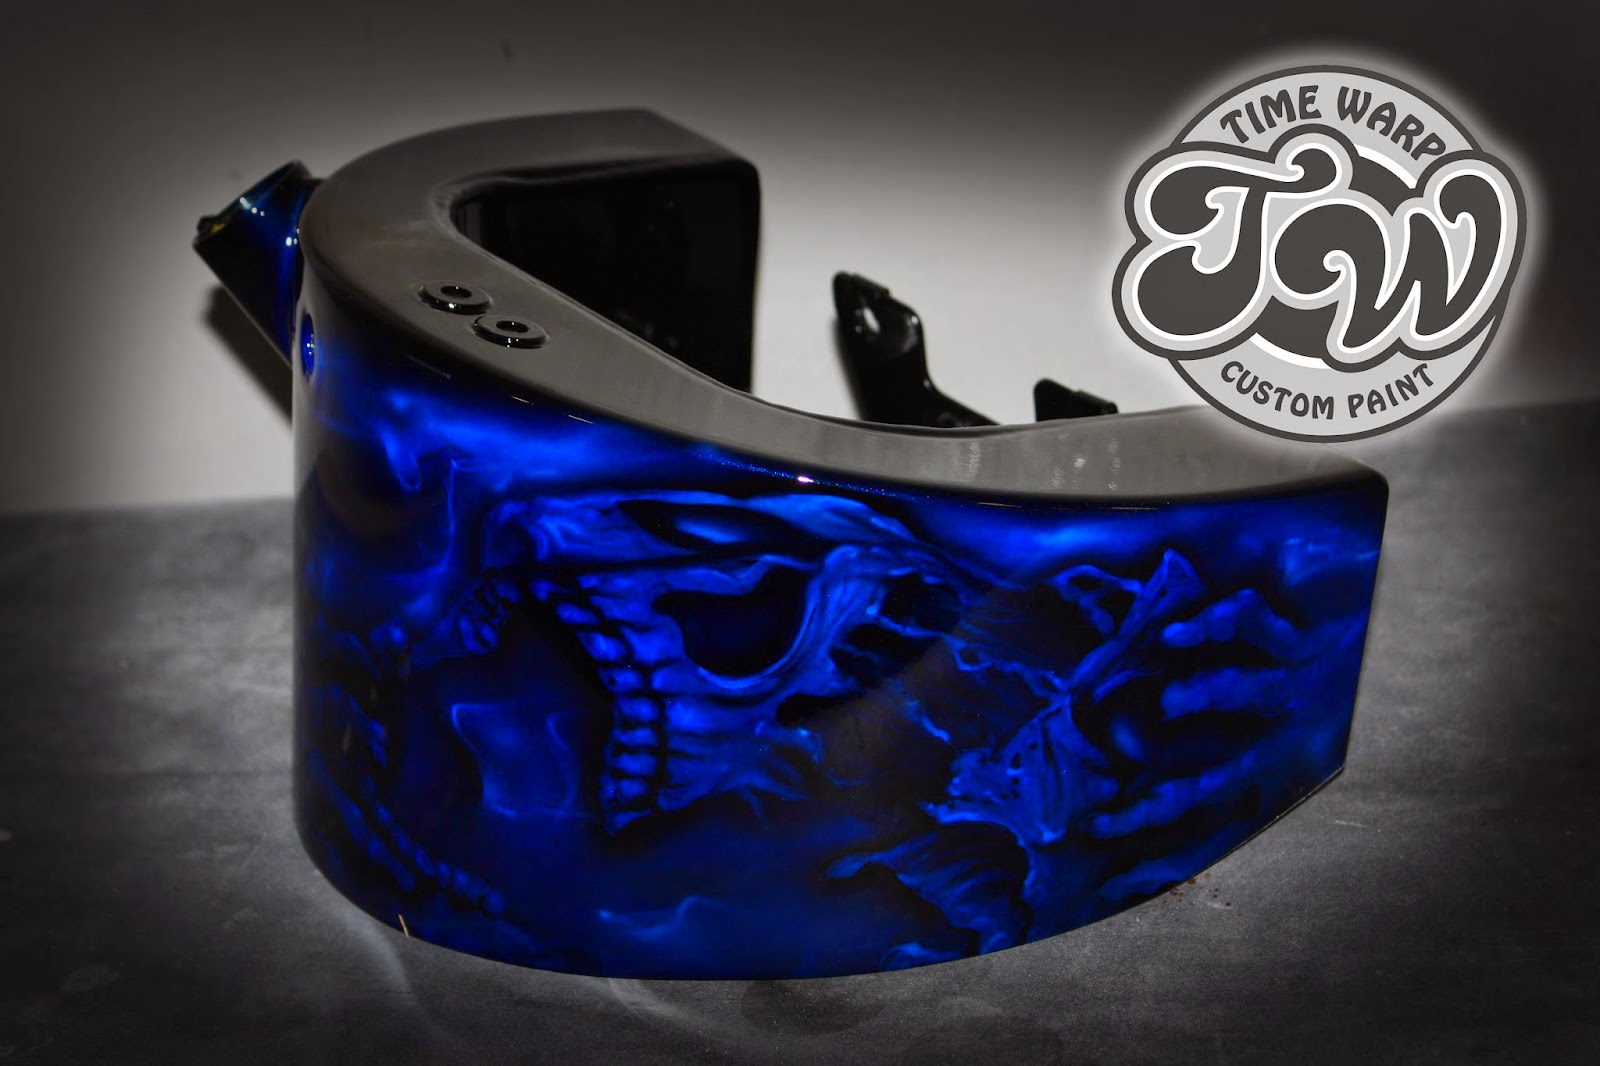 Online Motorcycle Paint Shop Cobalt Blue Ripping Skull On